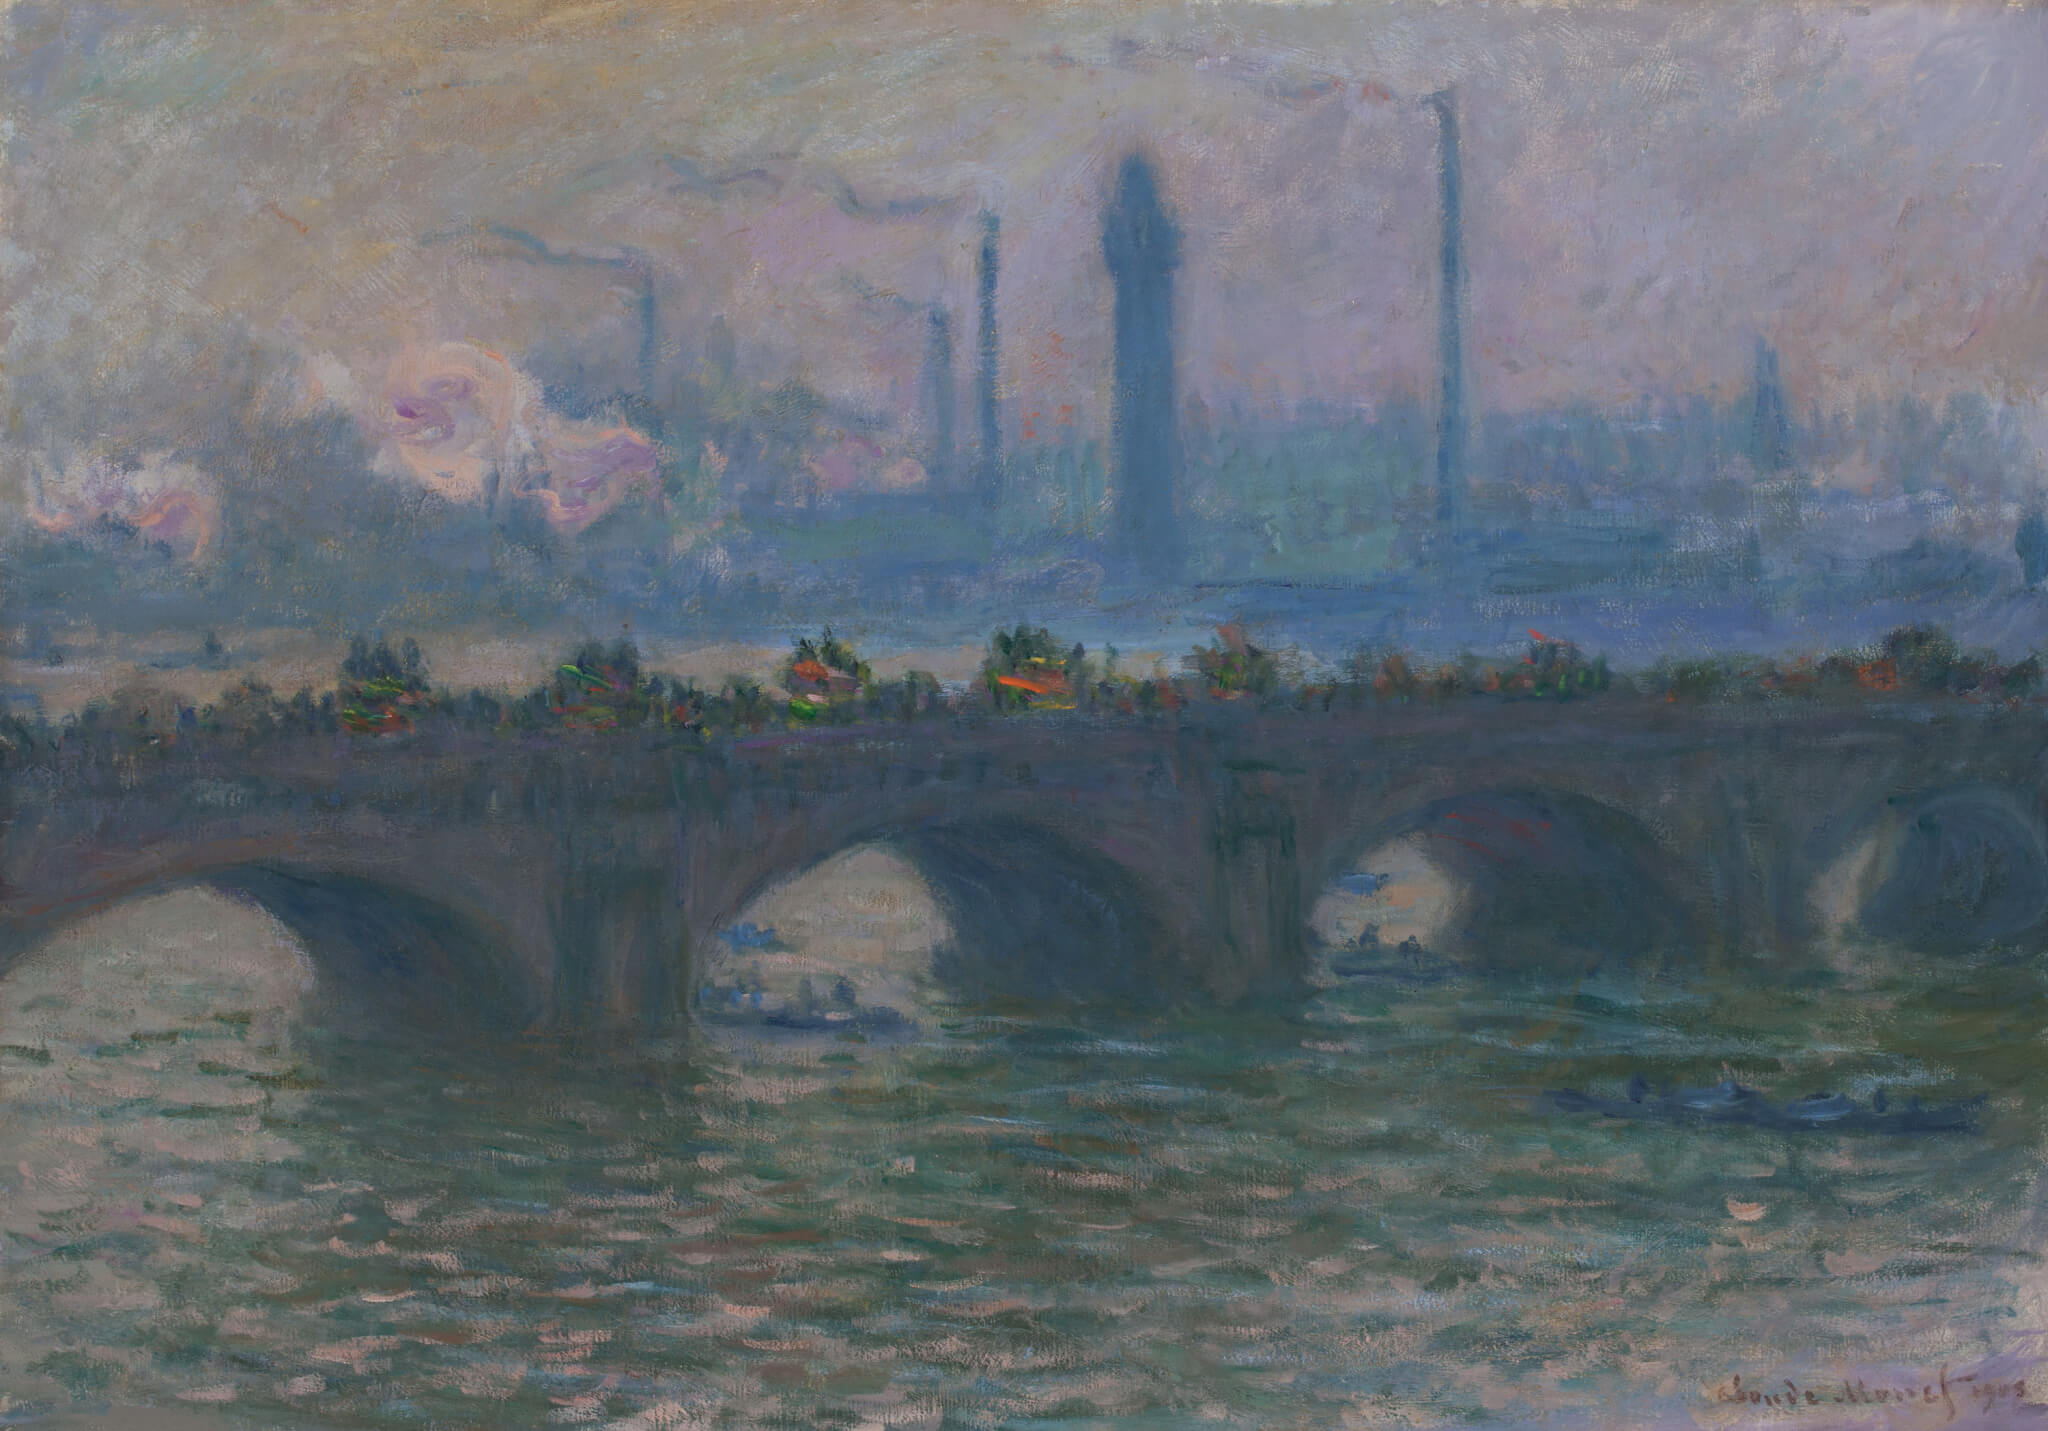 "Claude Monet, French, 1840-1926, ""Waterloo Bridge,"" 1903, oil on canvas, Worcester Art Museum collection, Museum Purchase, 1910.37. Photograph courtesy of the Worcester Art Museum."